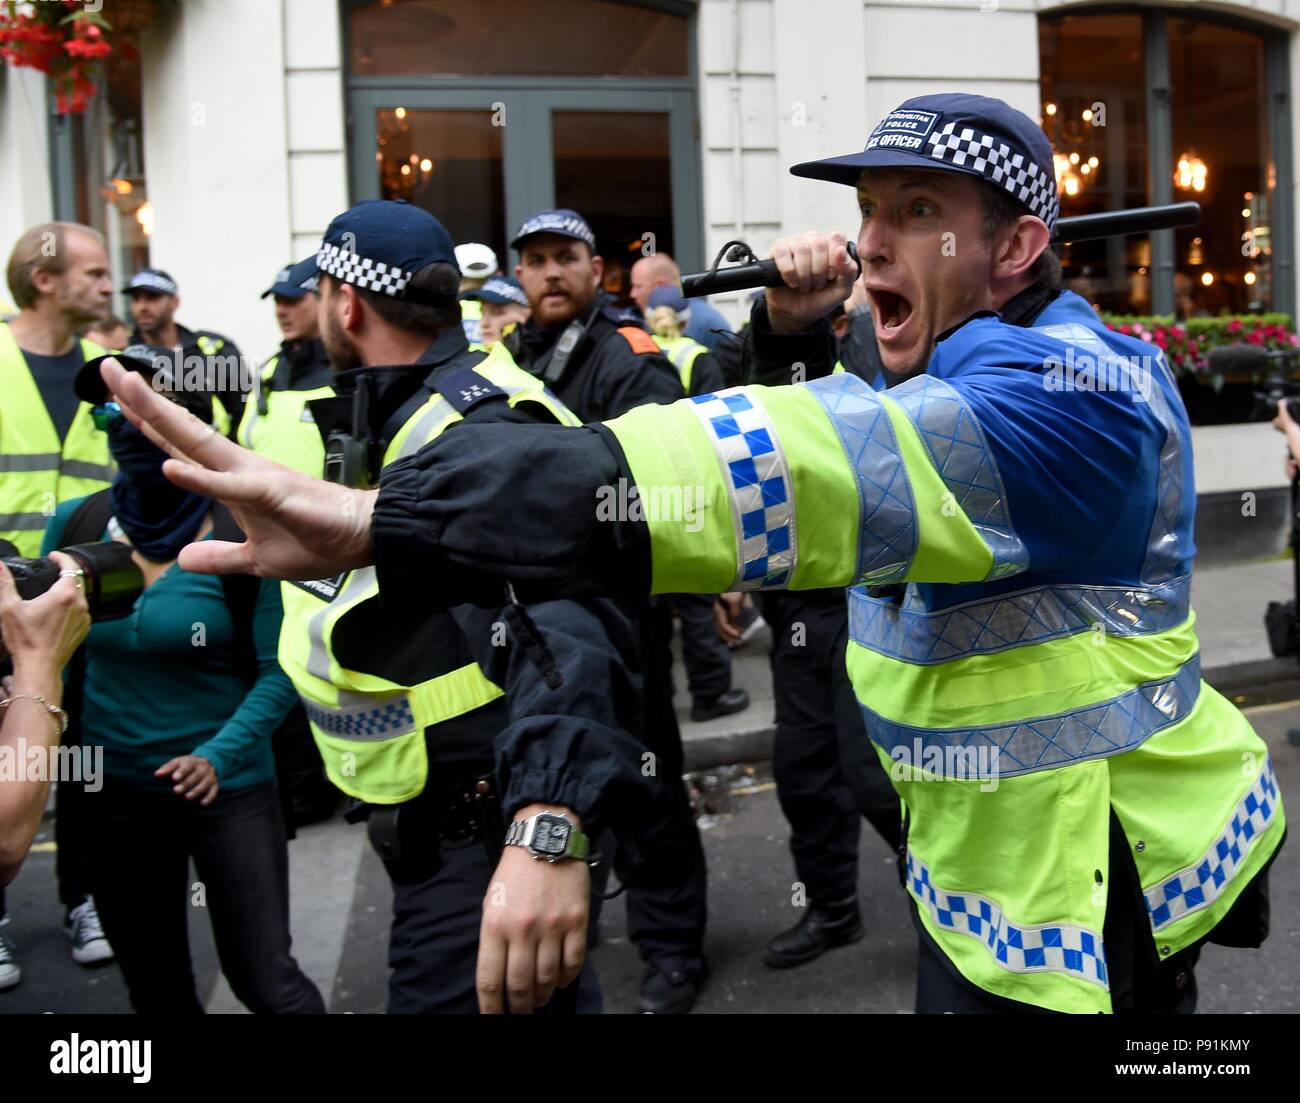 Anti-Fascist and pro Tommy Robinson marchers clash outside Parliament, London, UK Credit: Finnbarr Webster/Alamy Live News - Stock Image